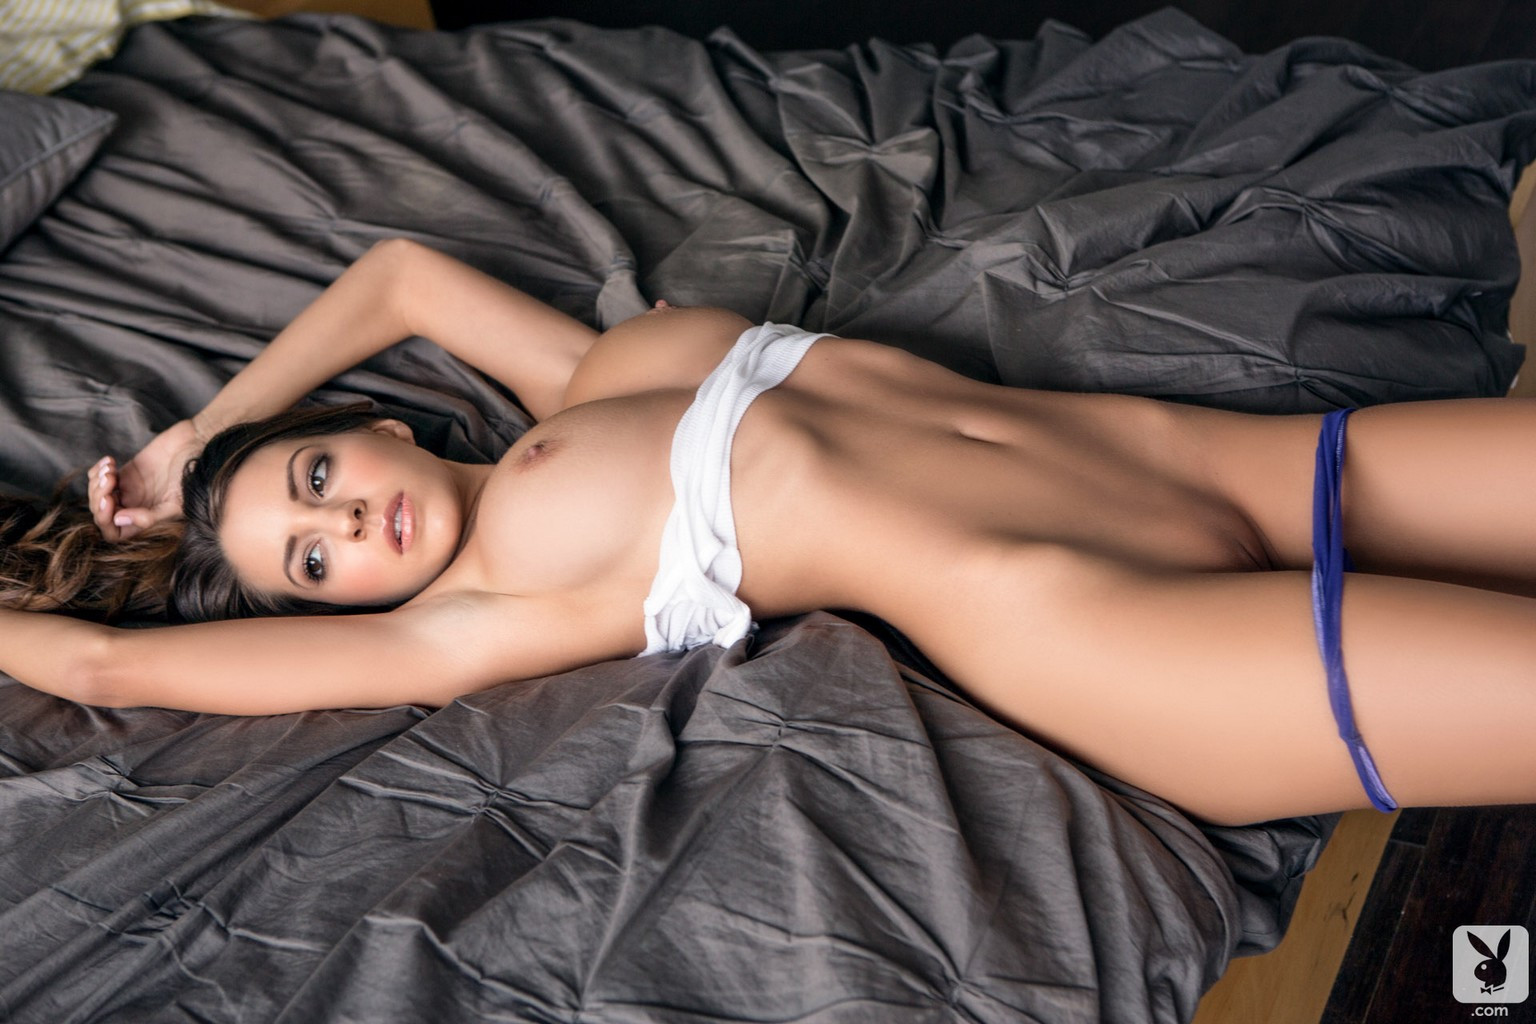 Shelby Chesnes Nude fappenings.com 31